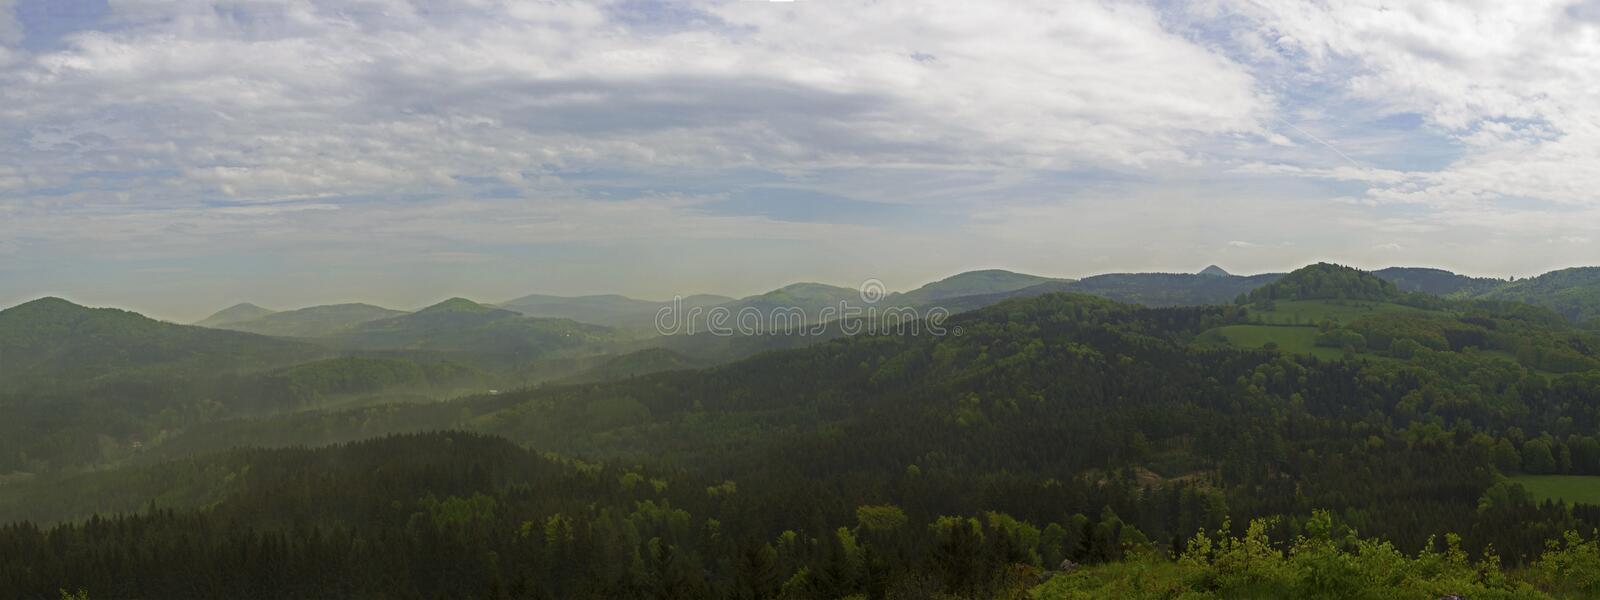 Luzicke hory mountains wide panorama, skyline view from hill stredni vrch, green forest and blue sky, white clouds background stock photography